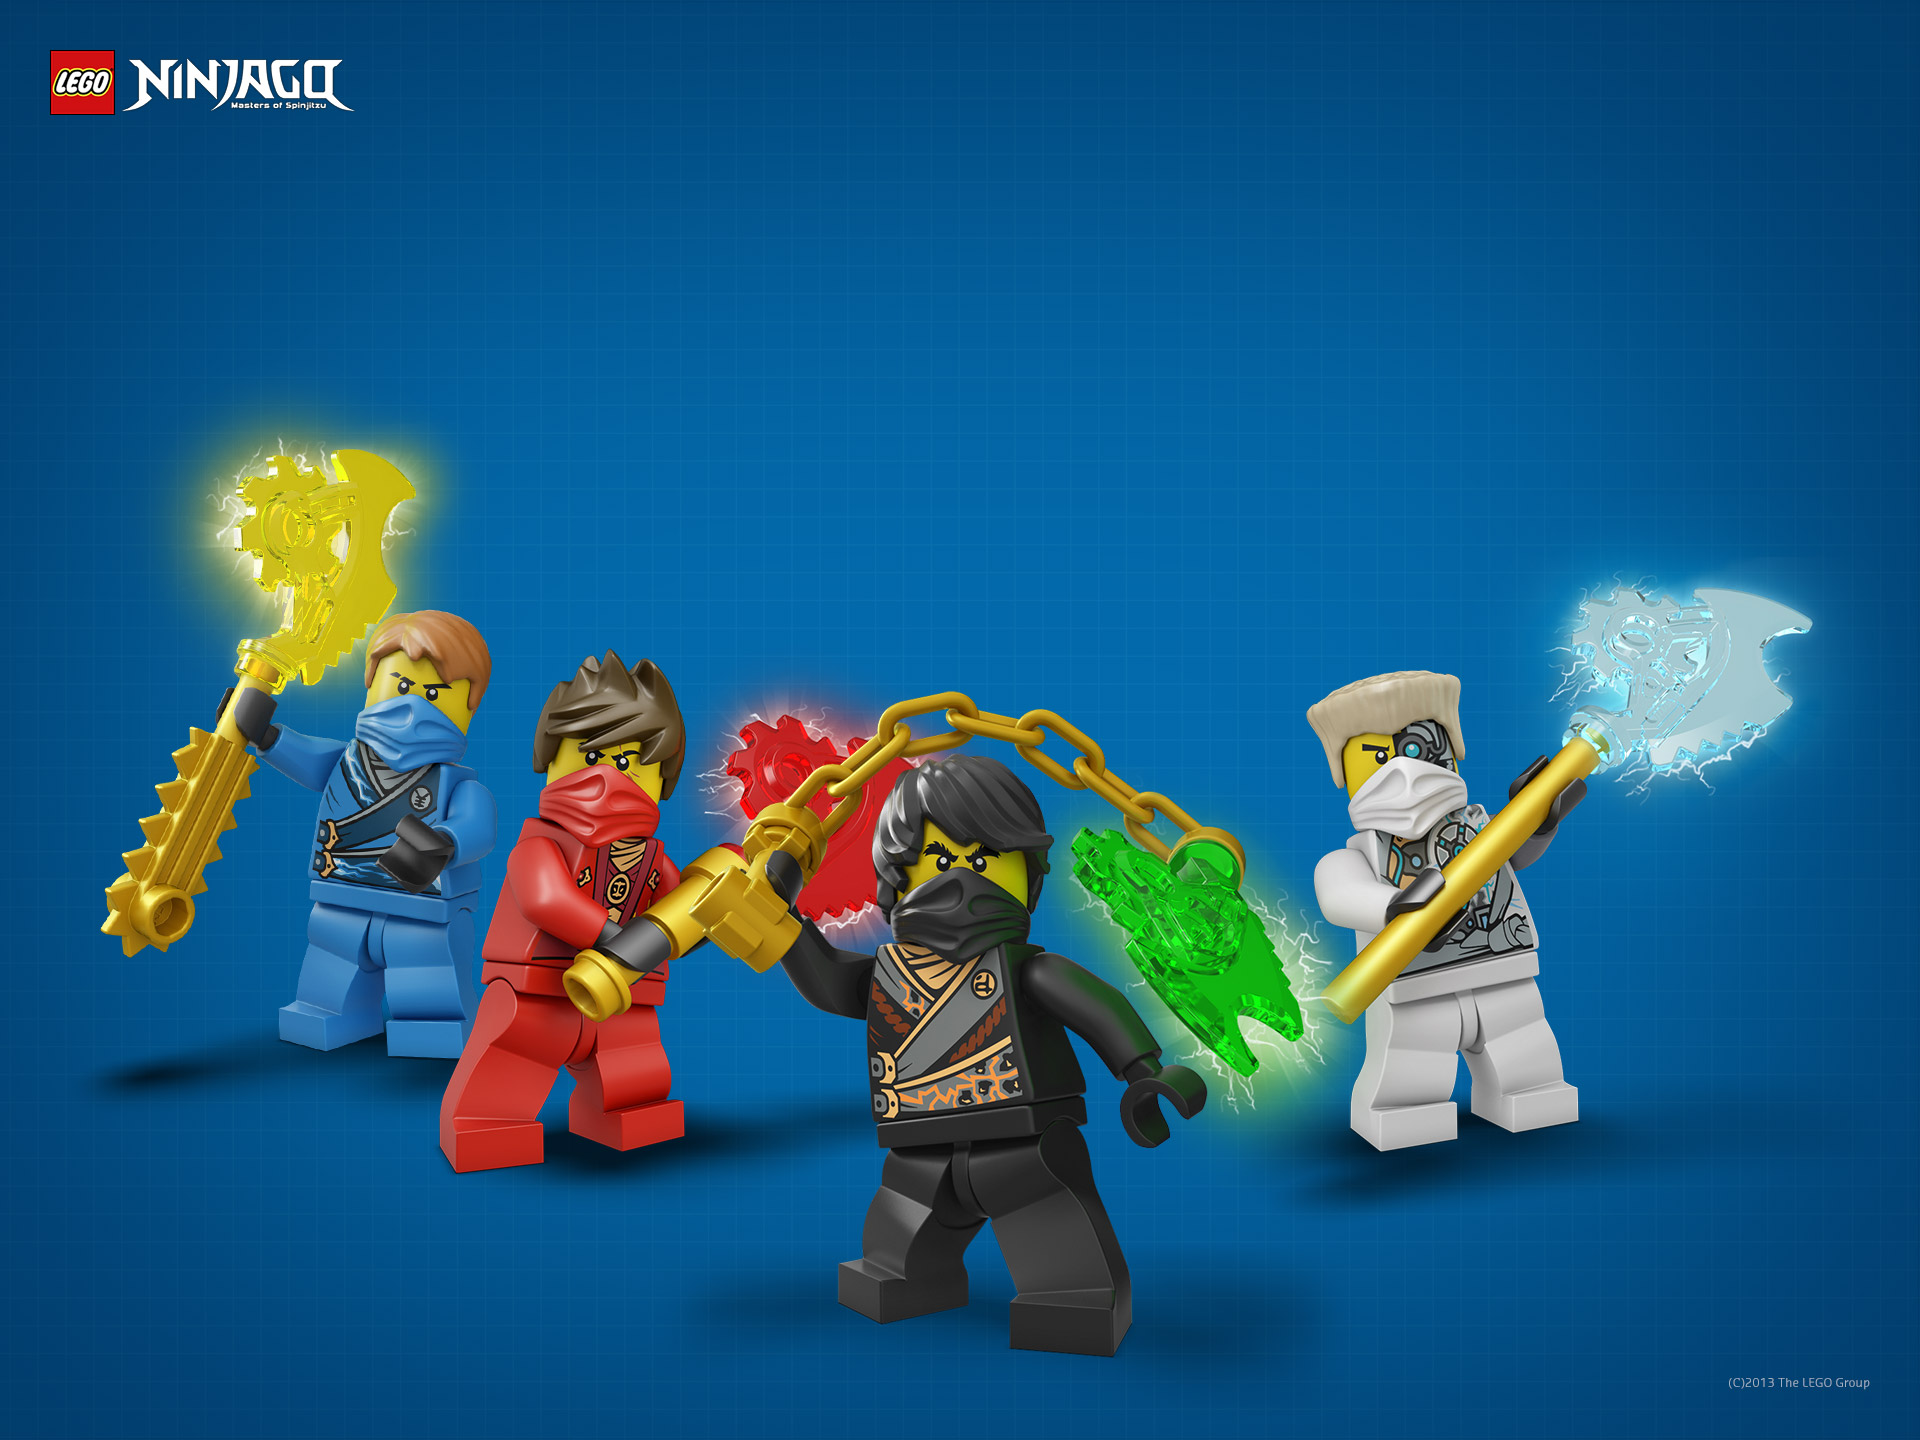 Lego Ninjago Characters - Wallpaper, High Definition, High ...